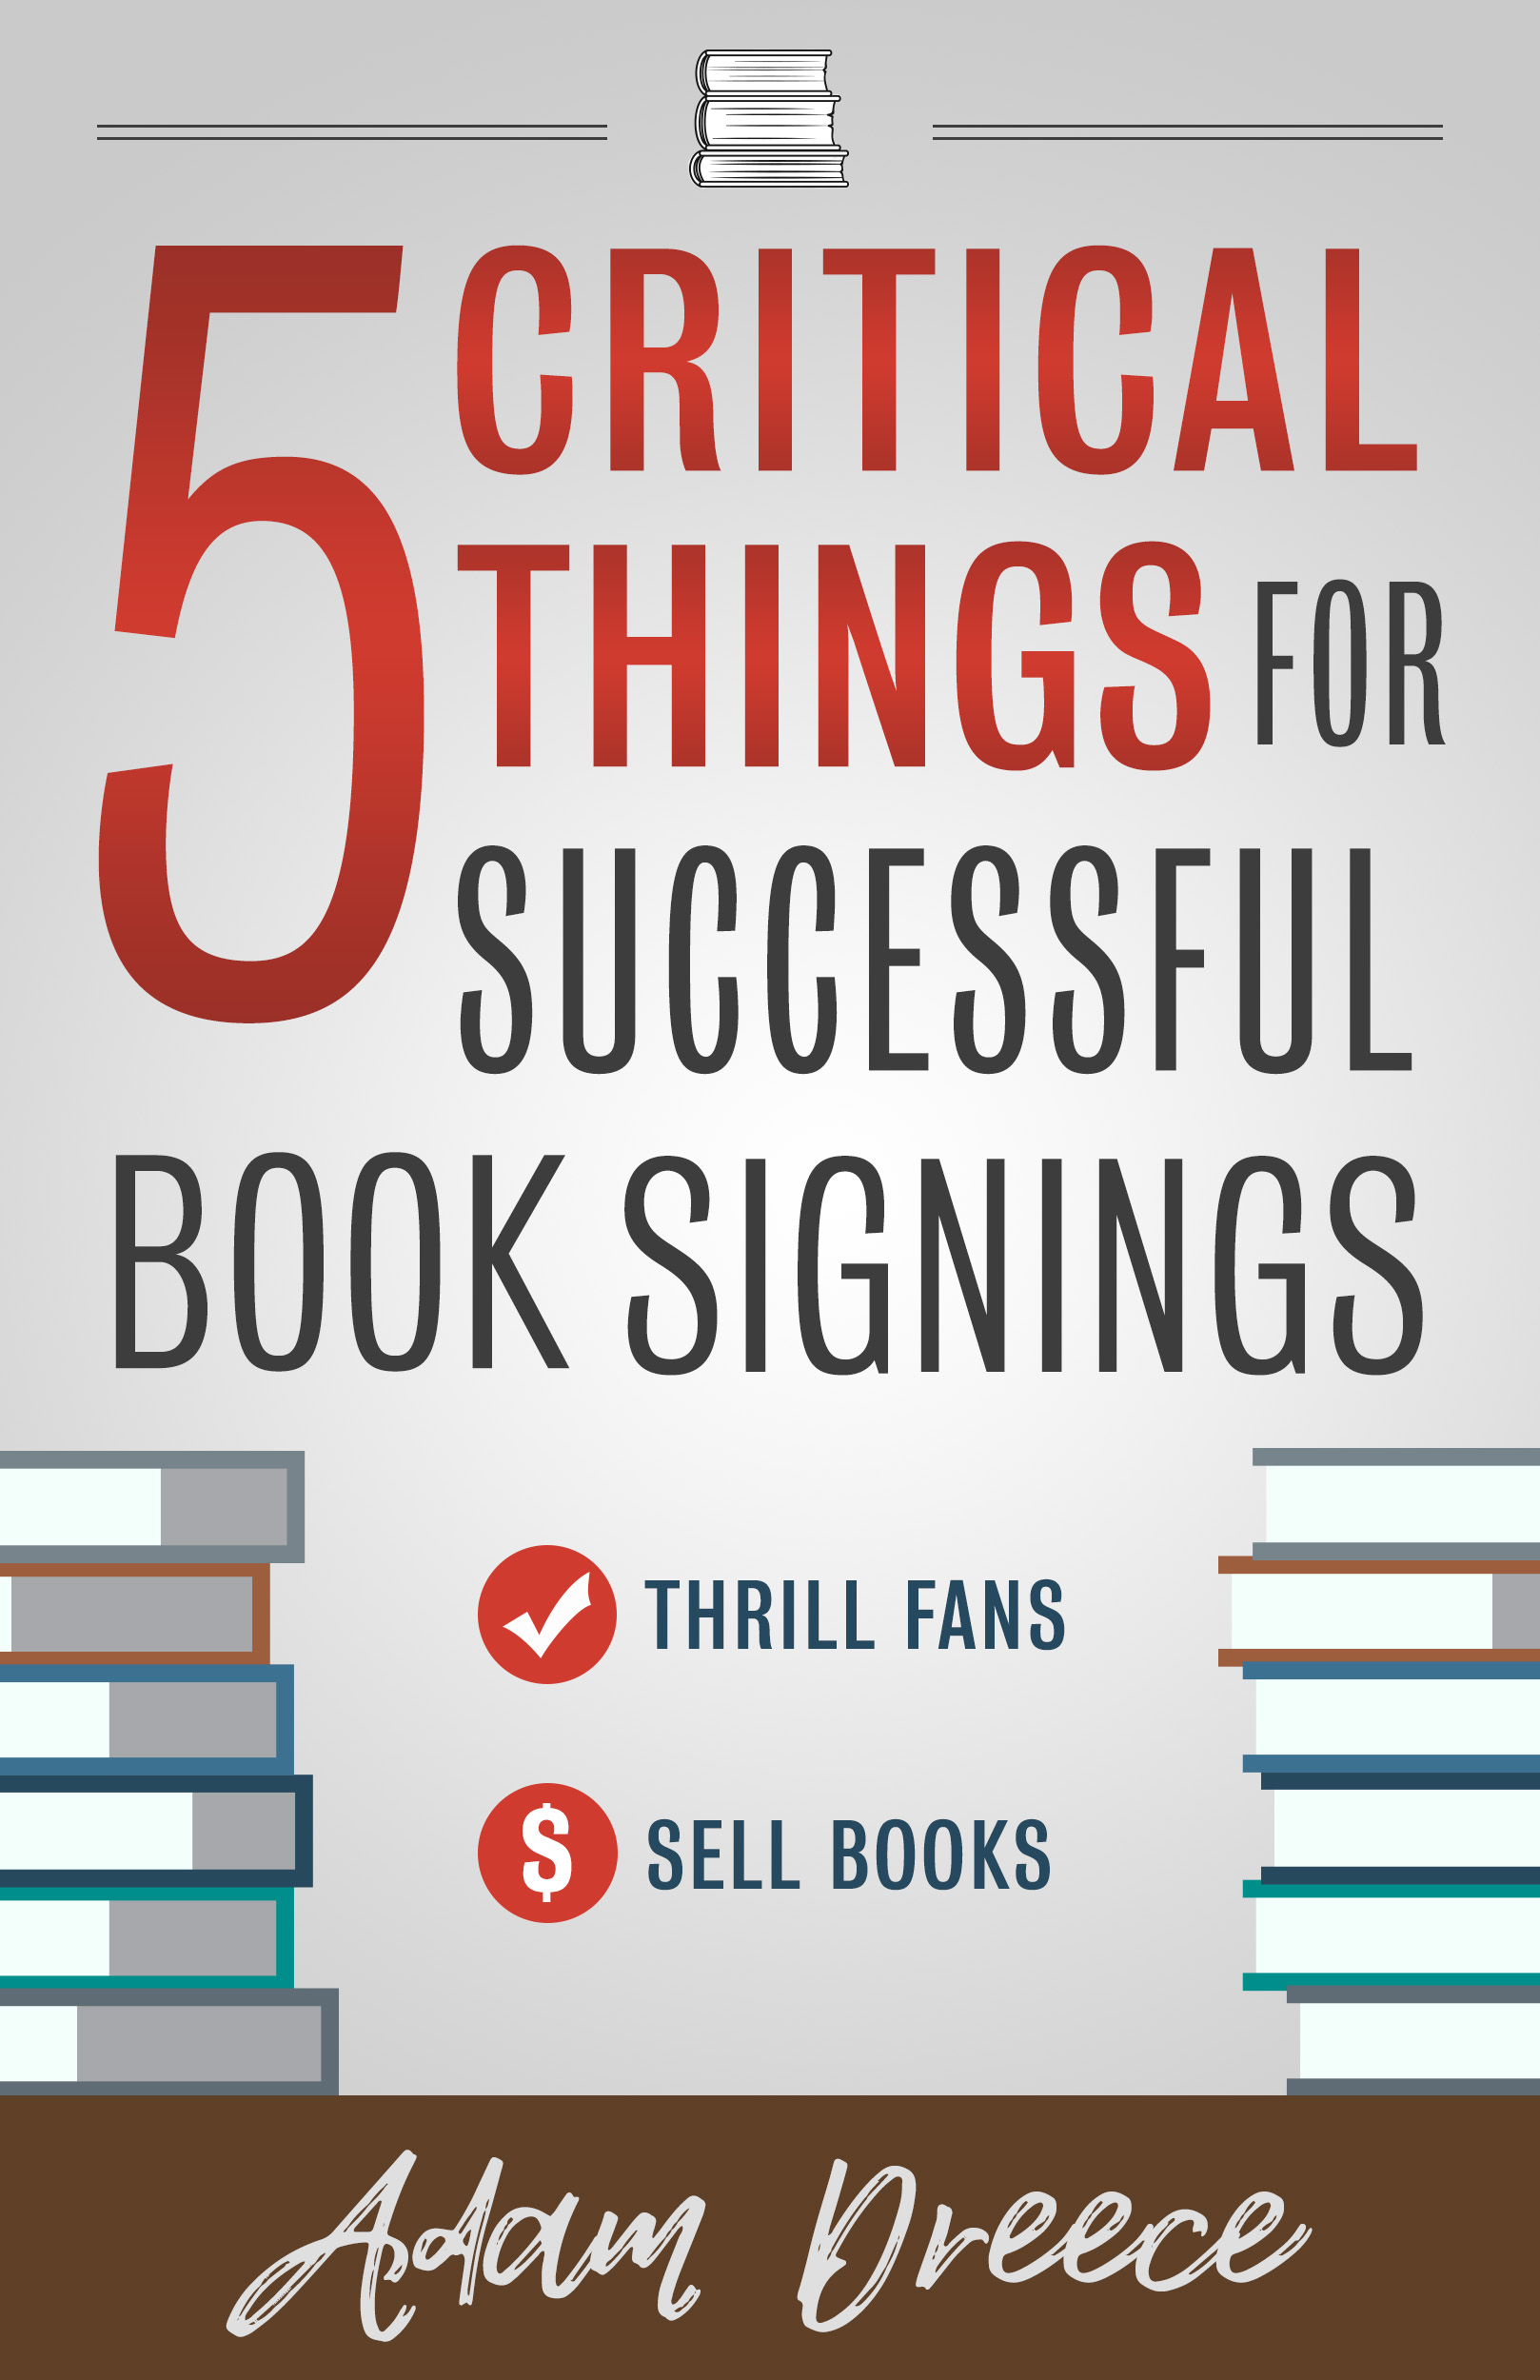 5 Critical Things Book Signings.jpg